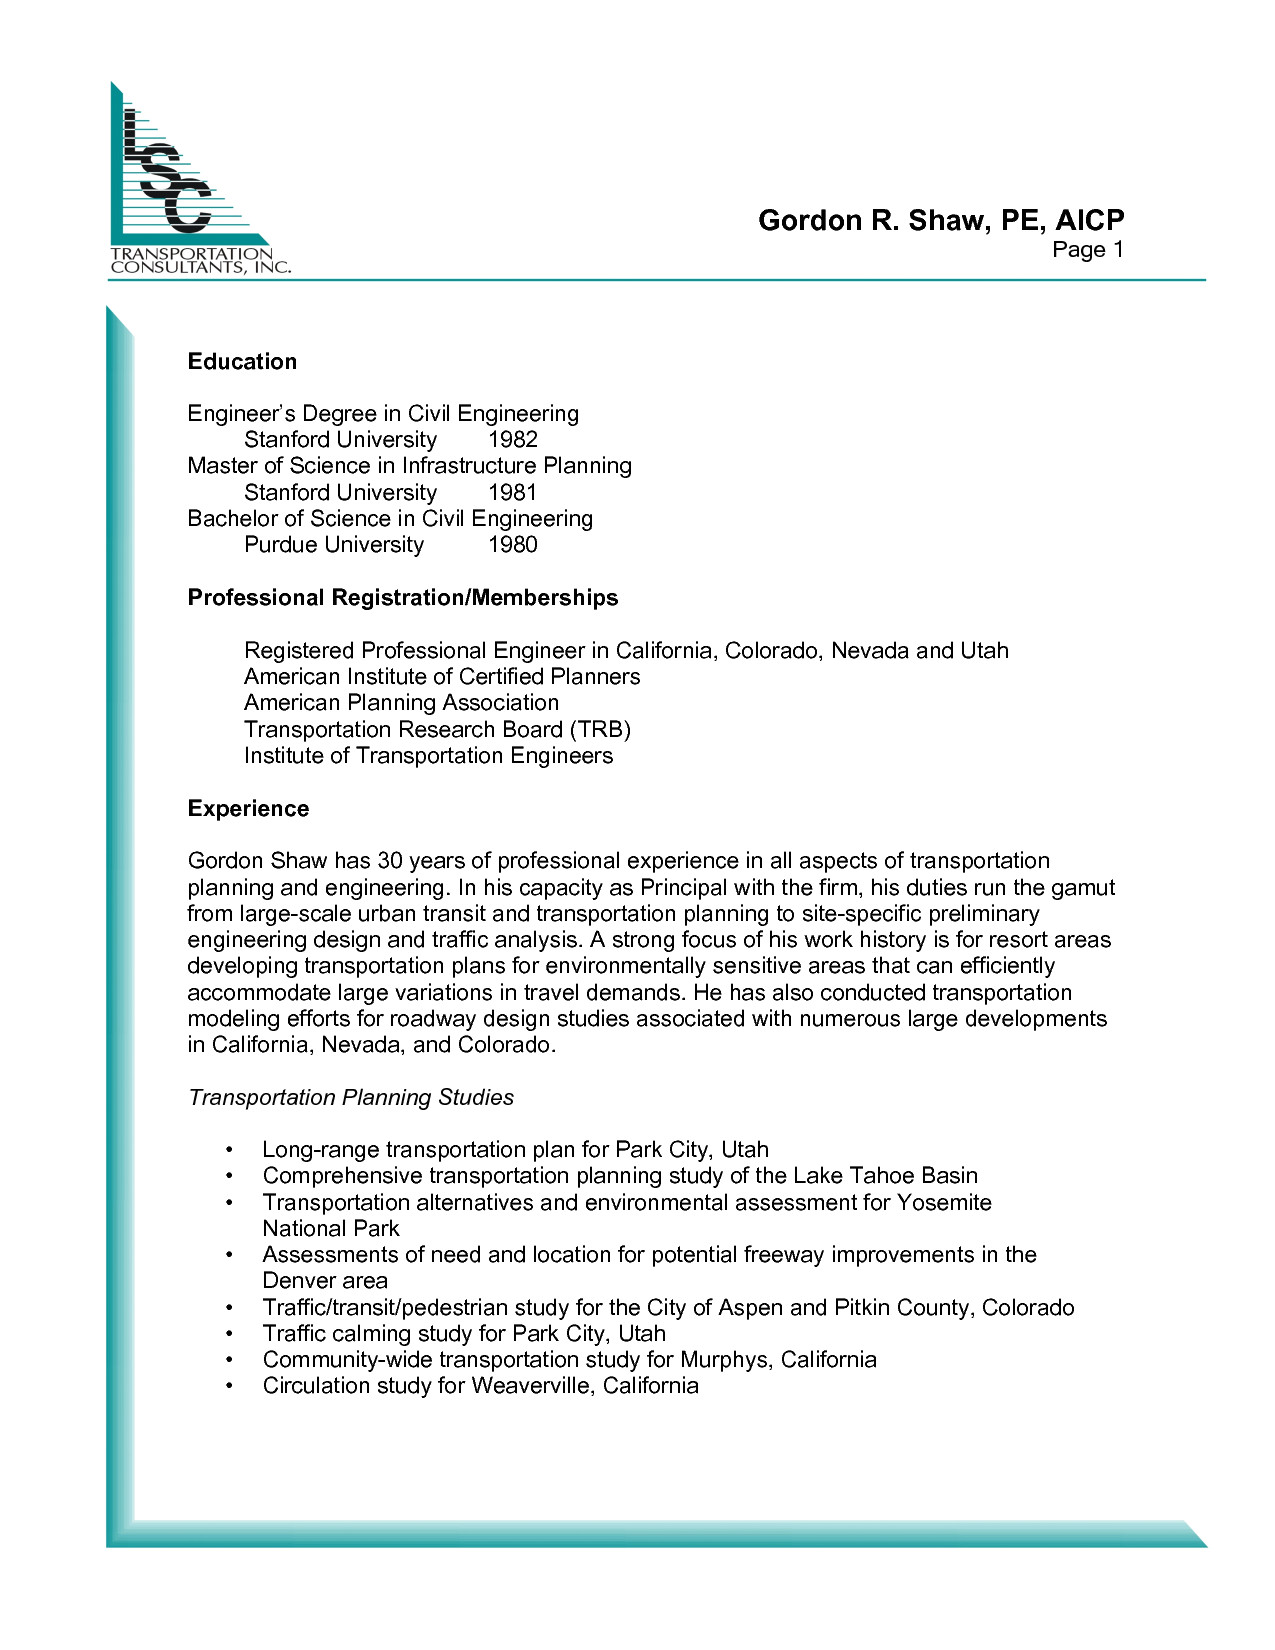 civil engineering resume samples for freshers pdf